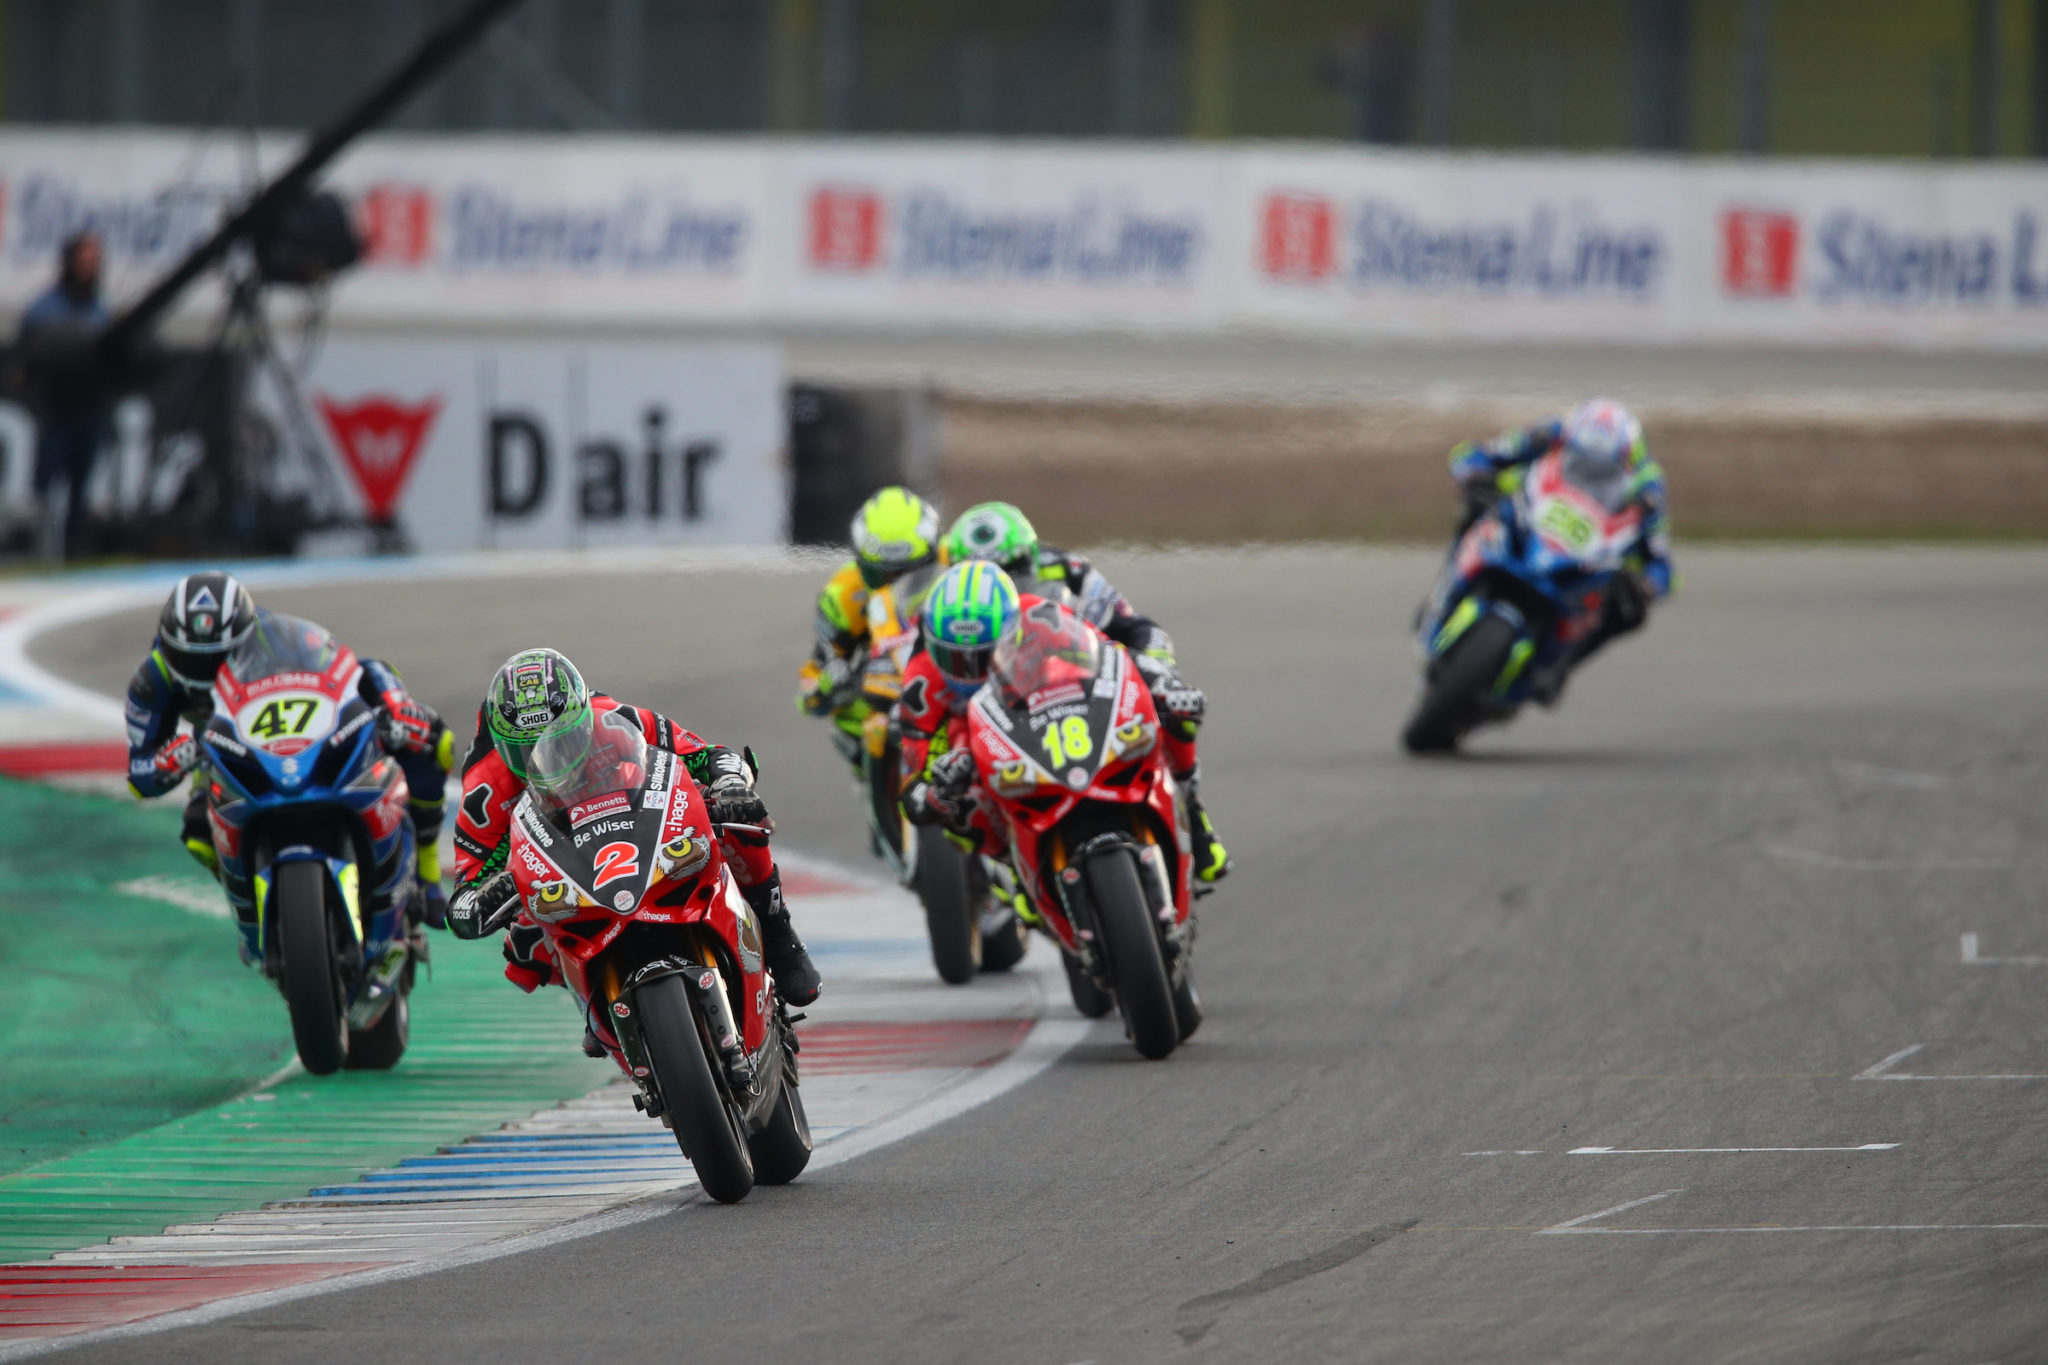 Irwin leading the way in a BSB 2018 race